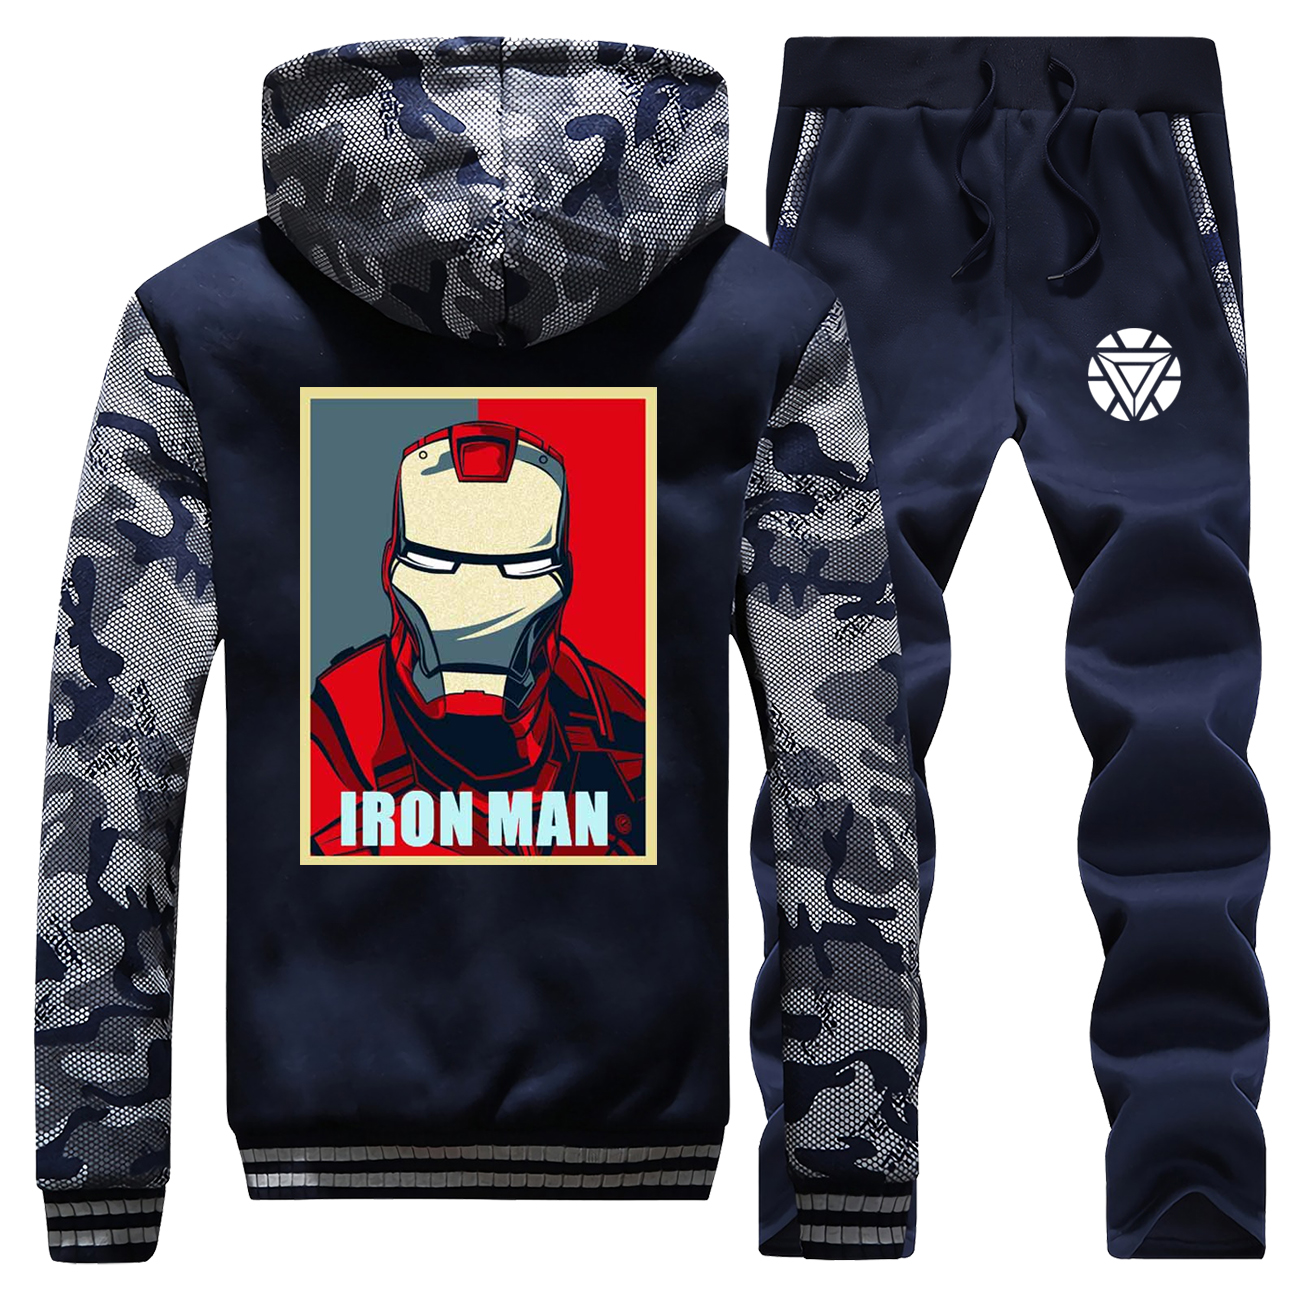 Men Hooded Streetwear Iron Man Winter The Avengers Camouflage Raglan Coat Suit Casual Jacket Thick Zipper+Sweatpants 2 Piece Set